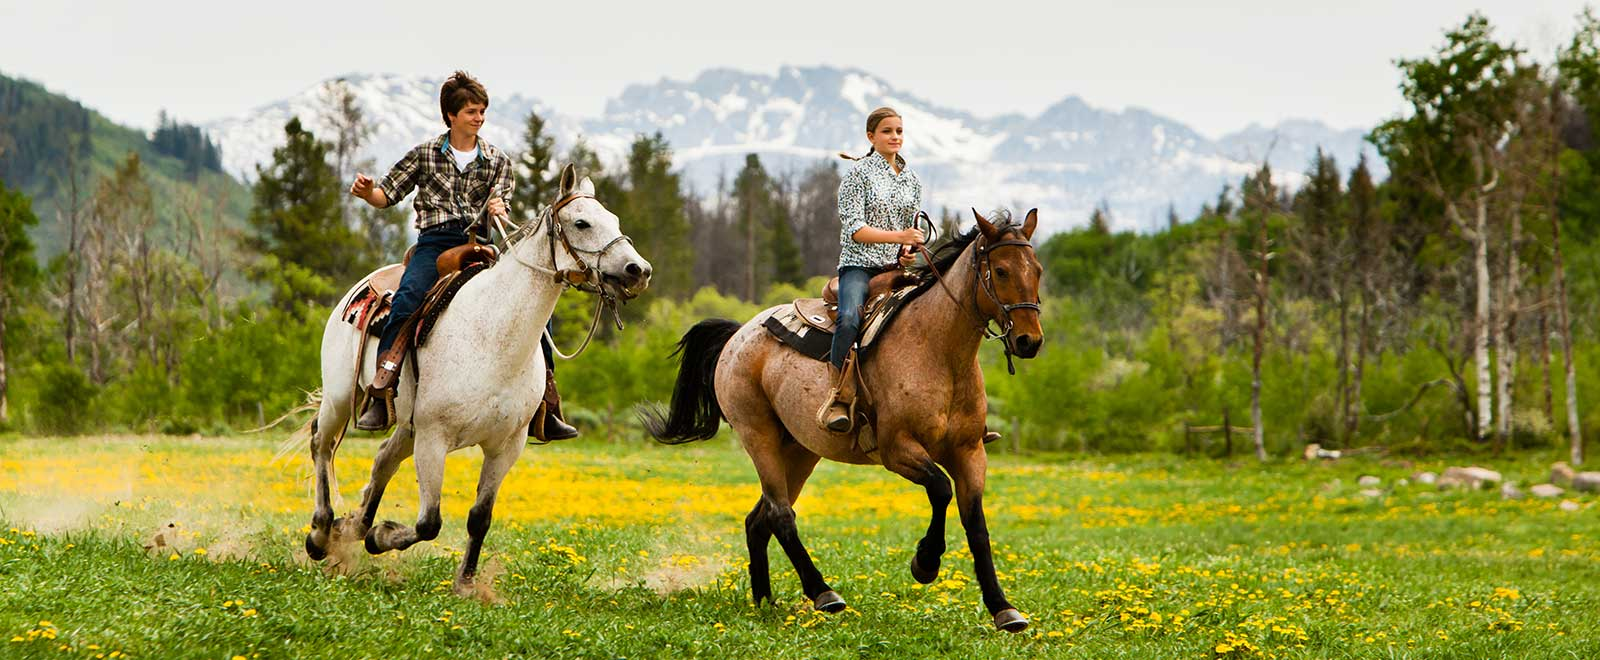 summit-county-co-horseback-riding